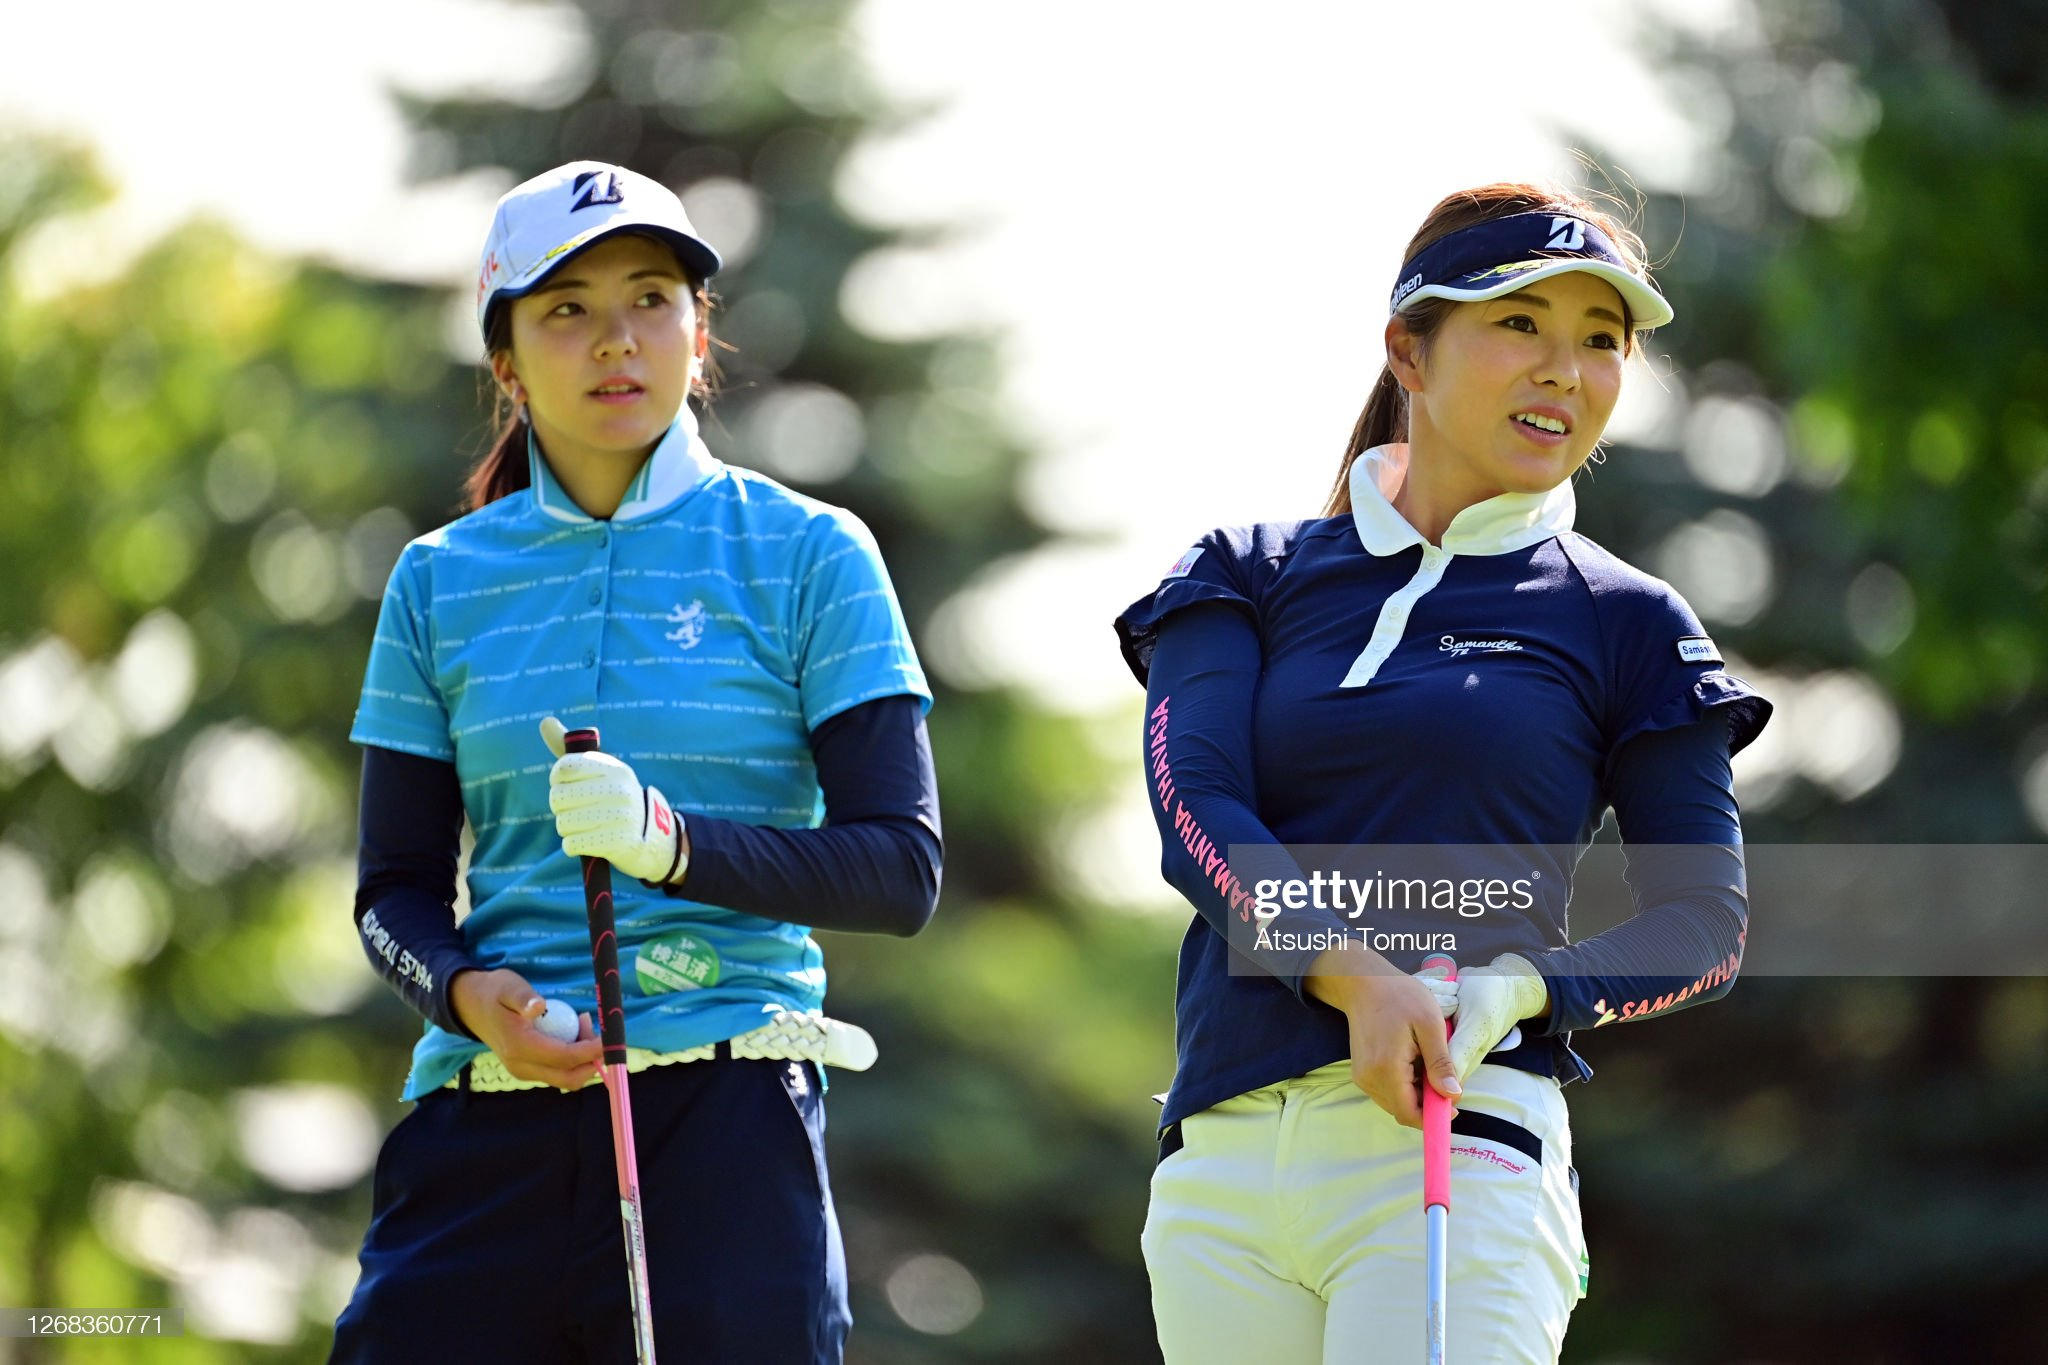 https://media.gettyimages.com/photos/kotone-hori-and-natsuka-hori-of-japan-are-seen-on-the-1st-tee-during-picture-id1268360771?s=2048x2048